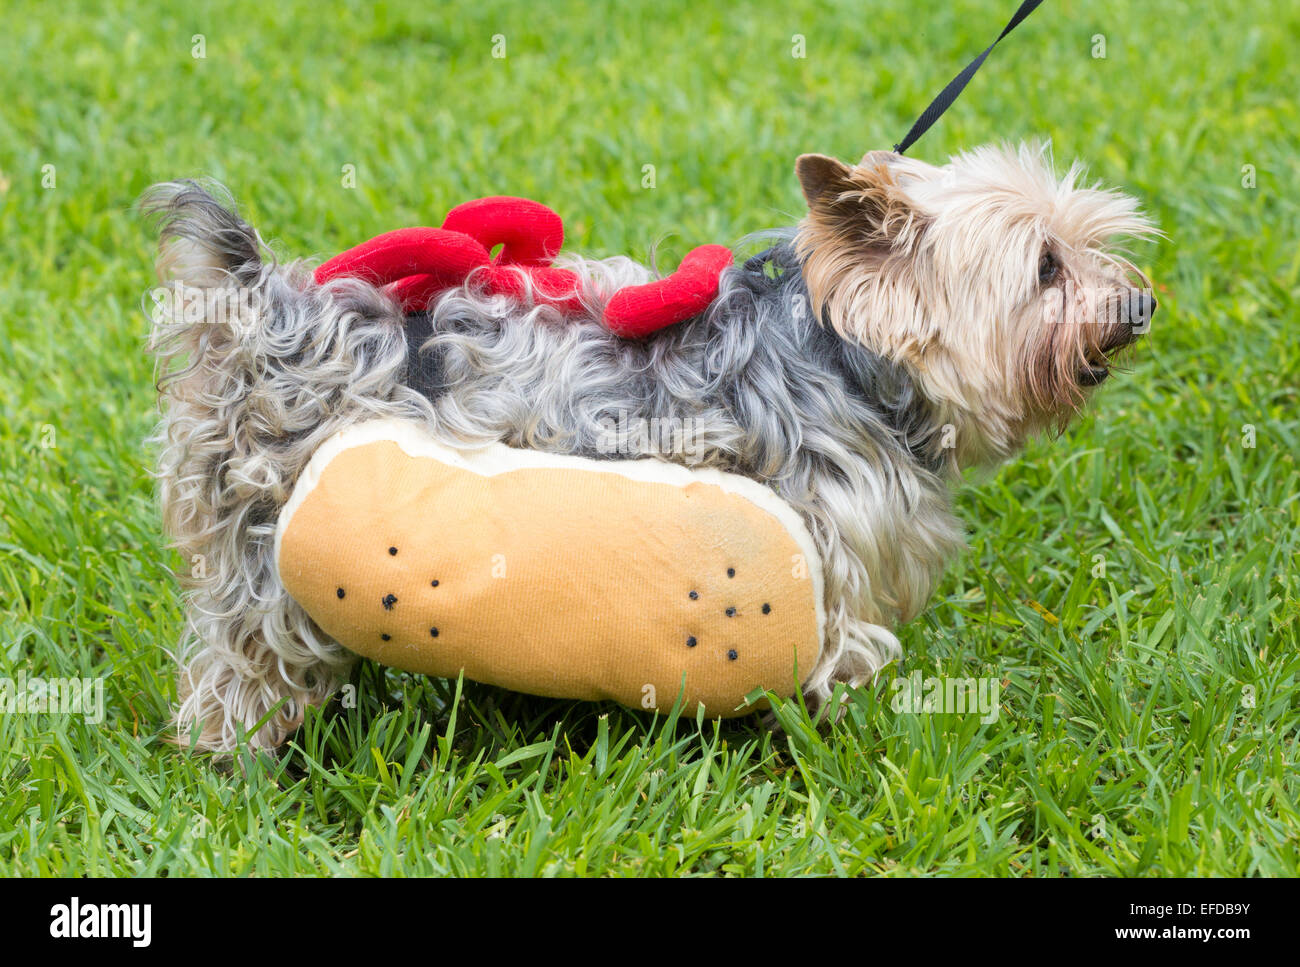 Yorkshire Terrier Dressed As Hot Dog At Dog Stock Photo 78355591